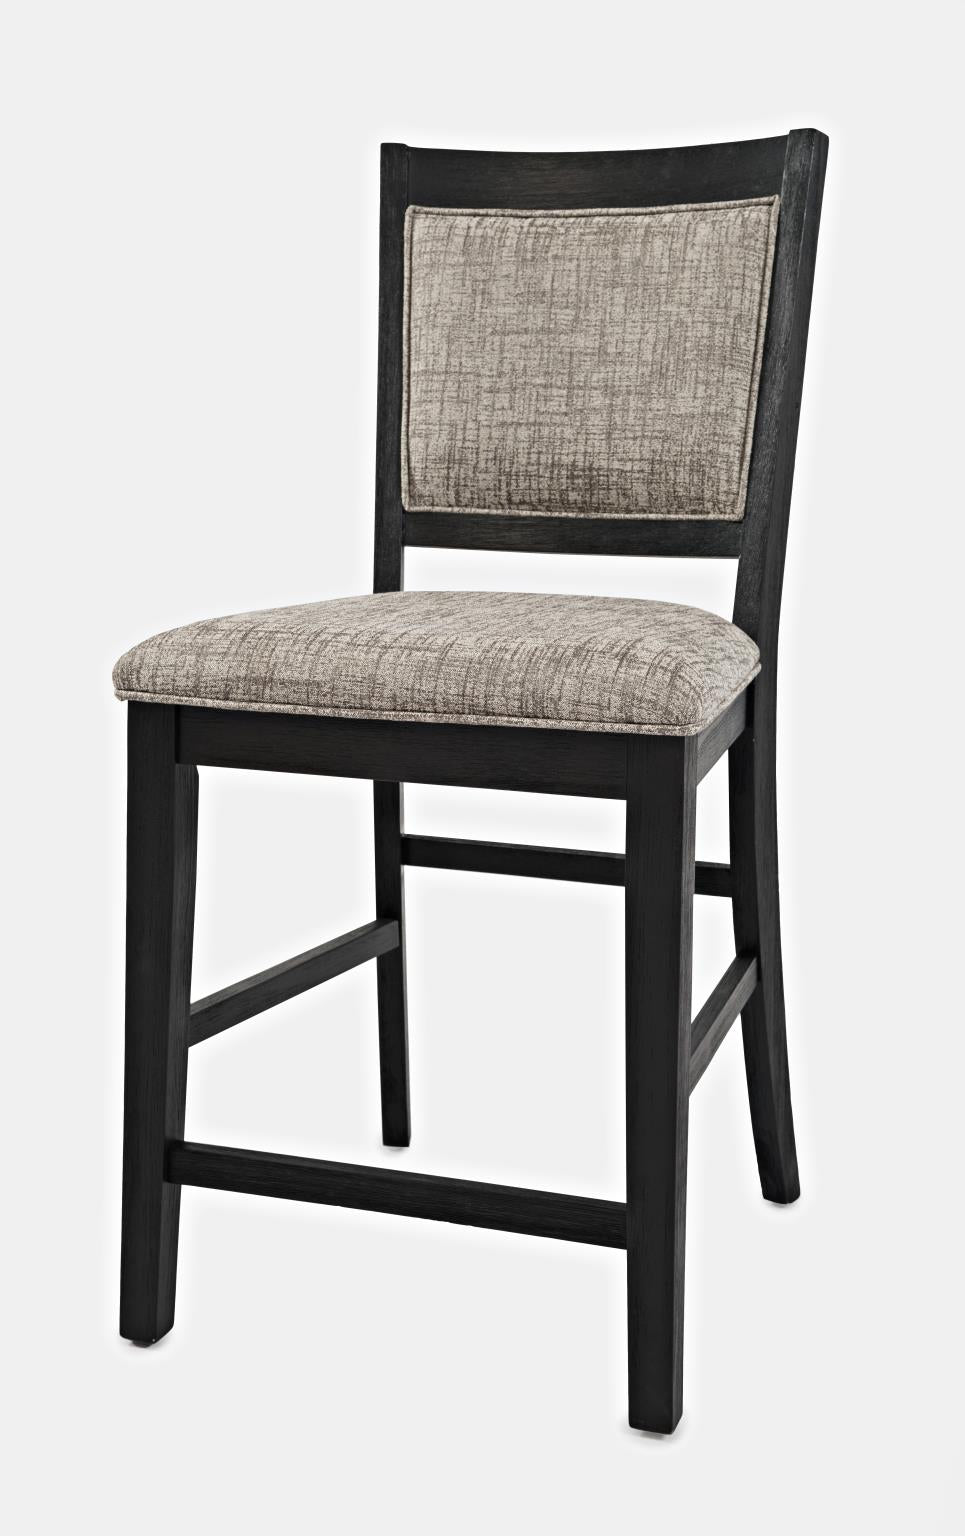 Altamonte (2) Upholstered  Counter Stool - Lifestyle Furniture